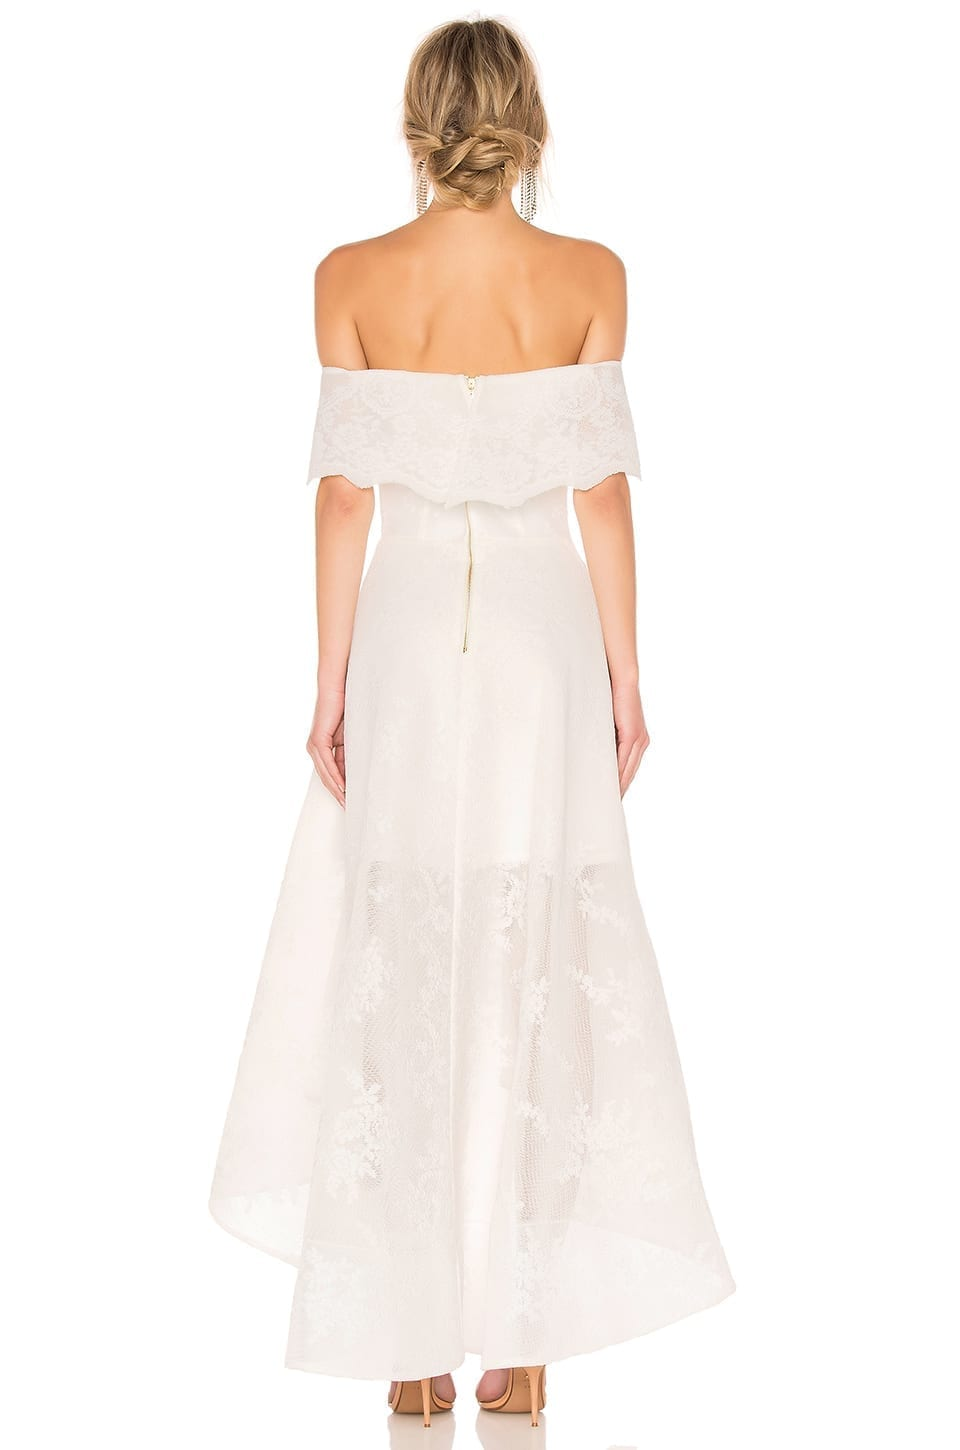 BRONX AND BANCO Tulip Lace Gown White Dress - We Select Dresses